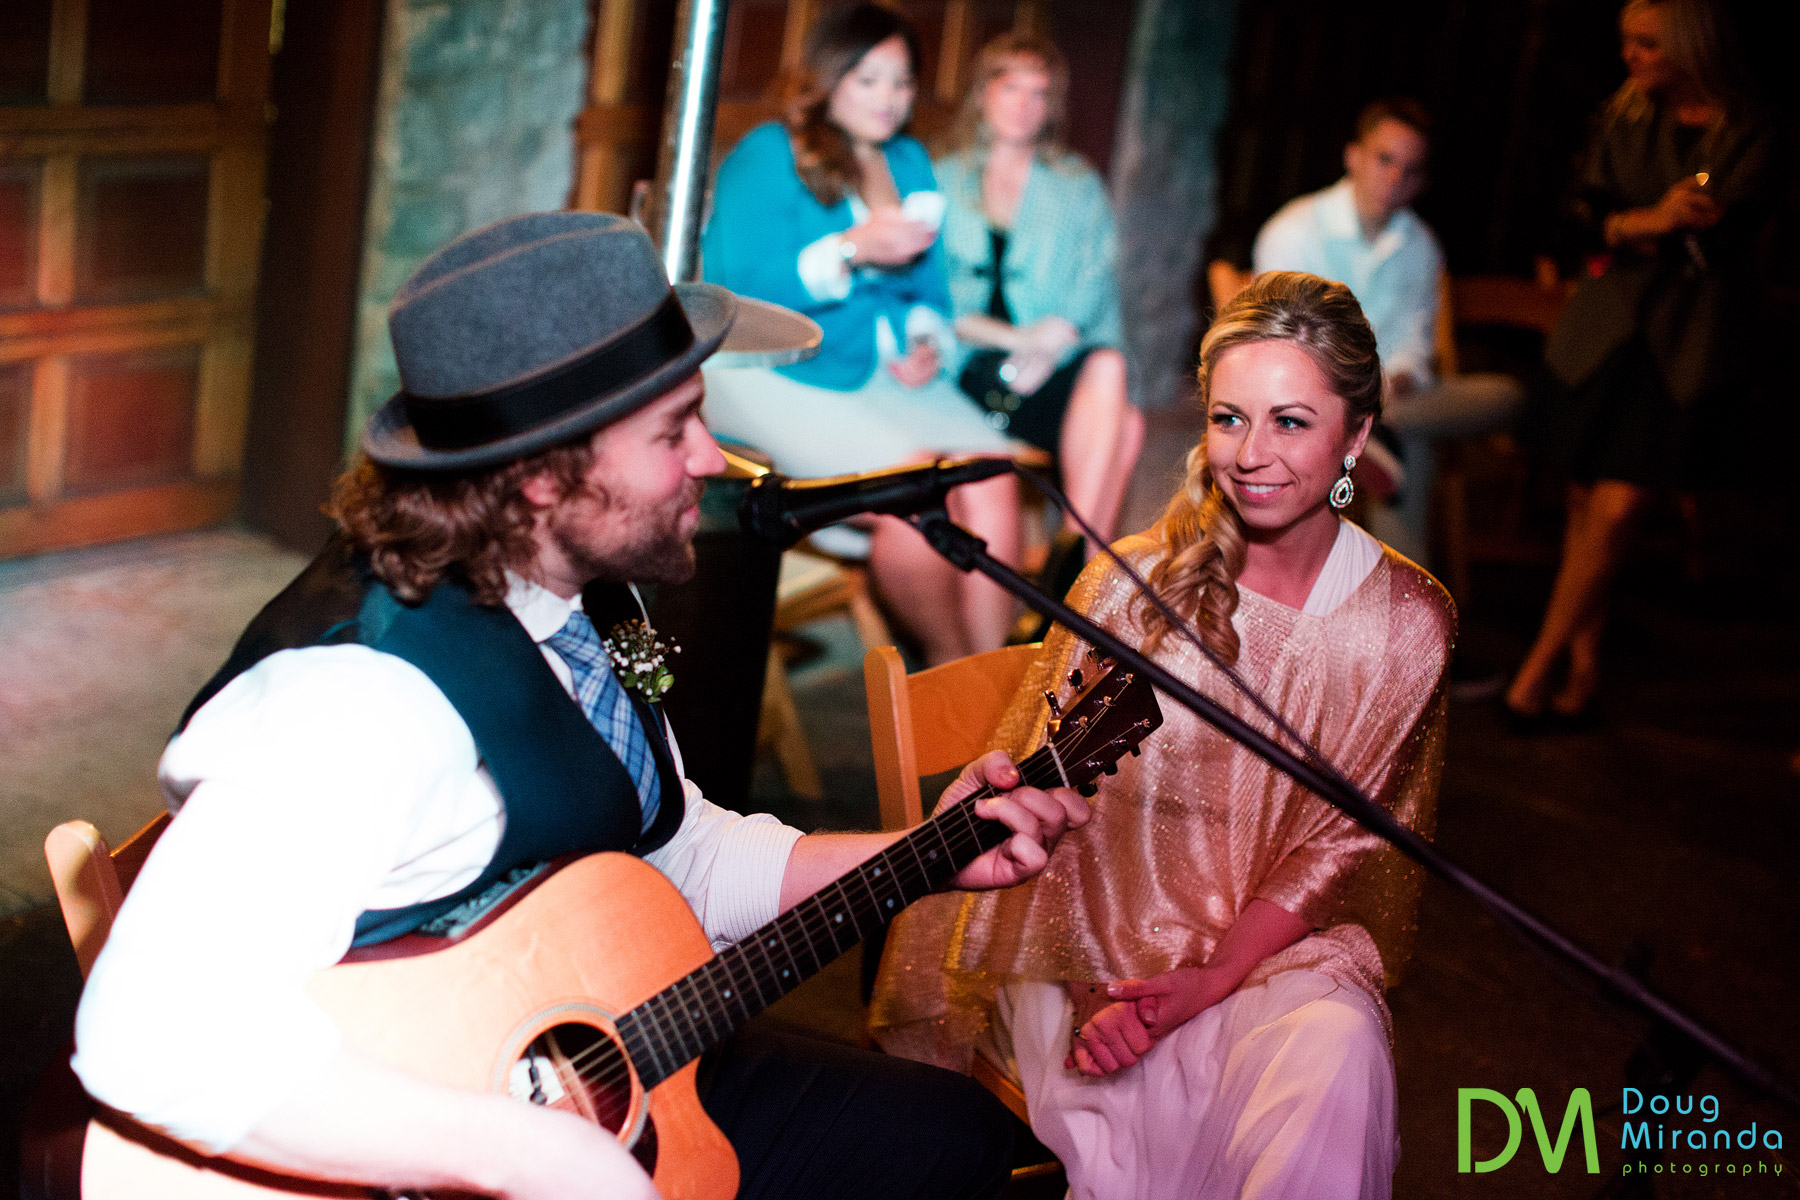 Darren serenaded Heather with a song right before their first dance.